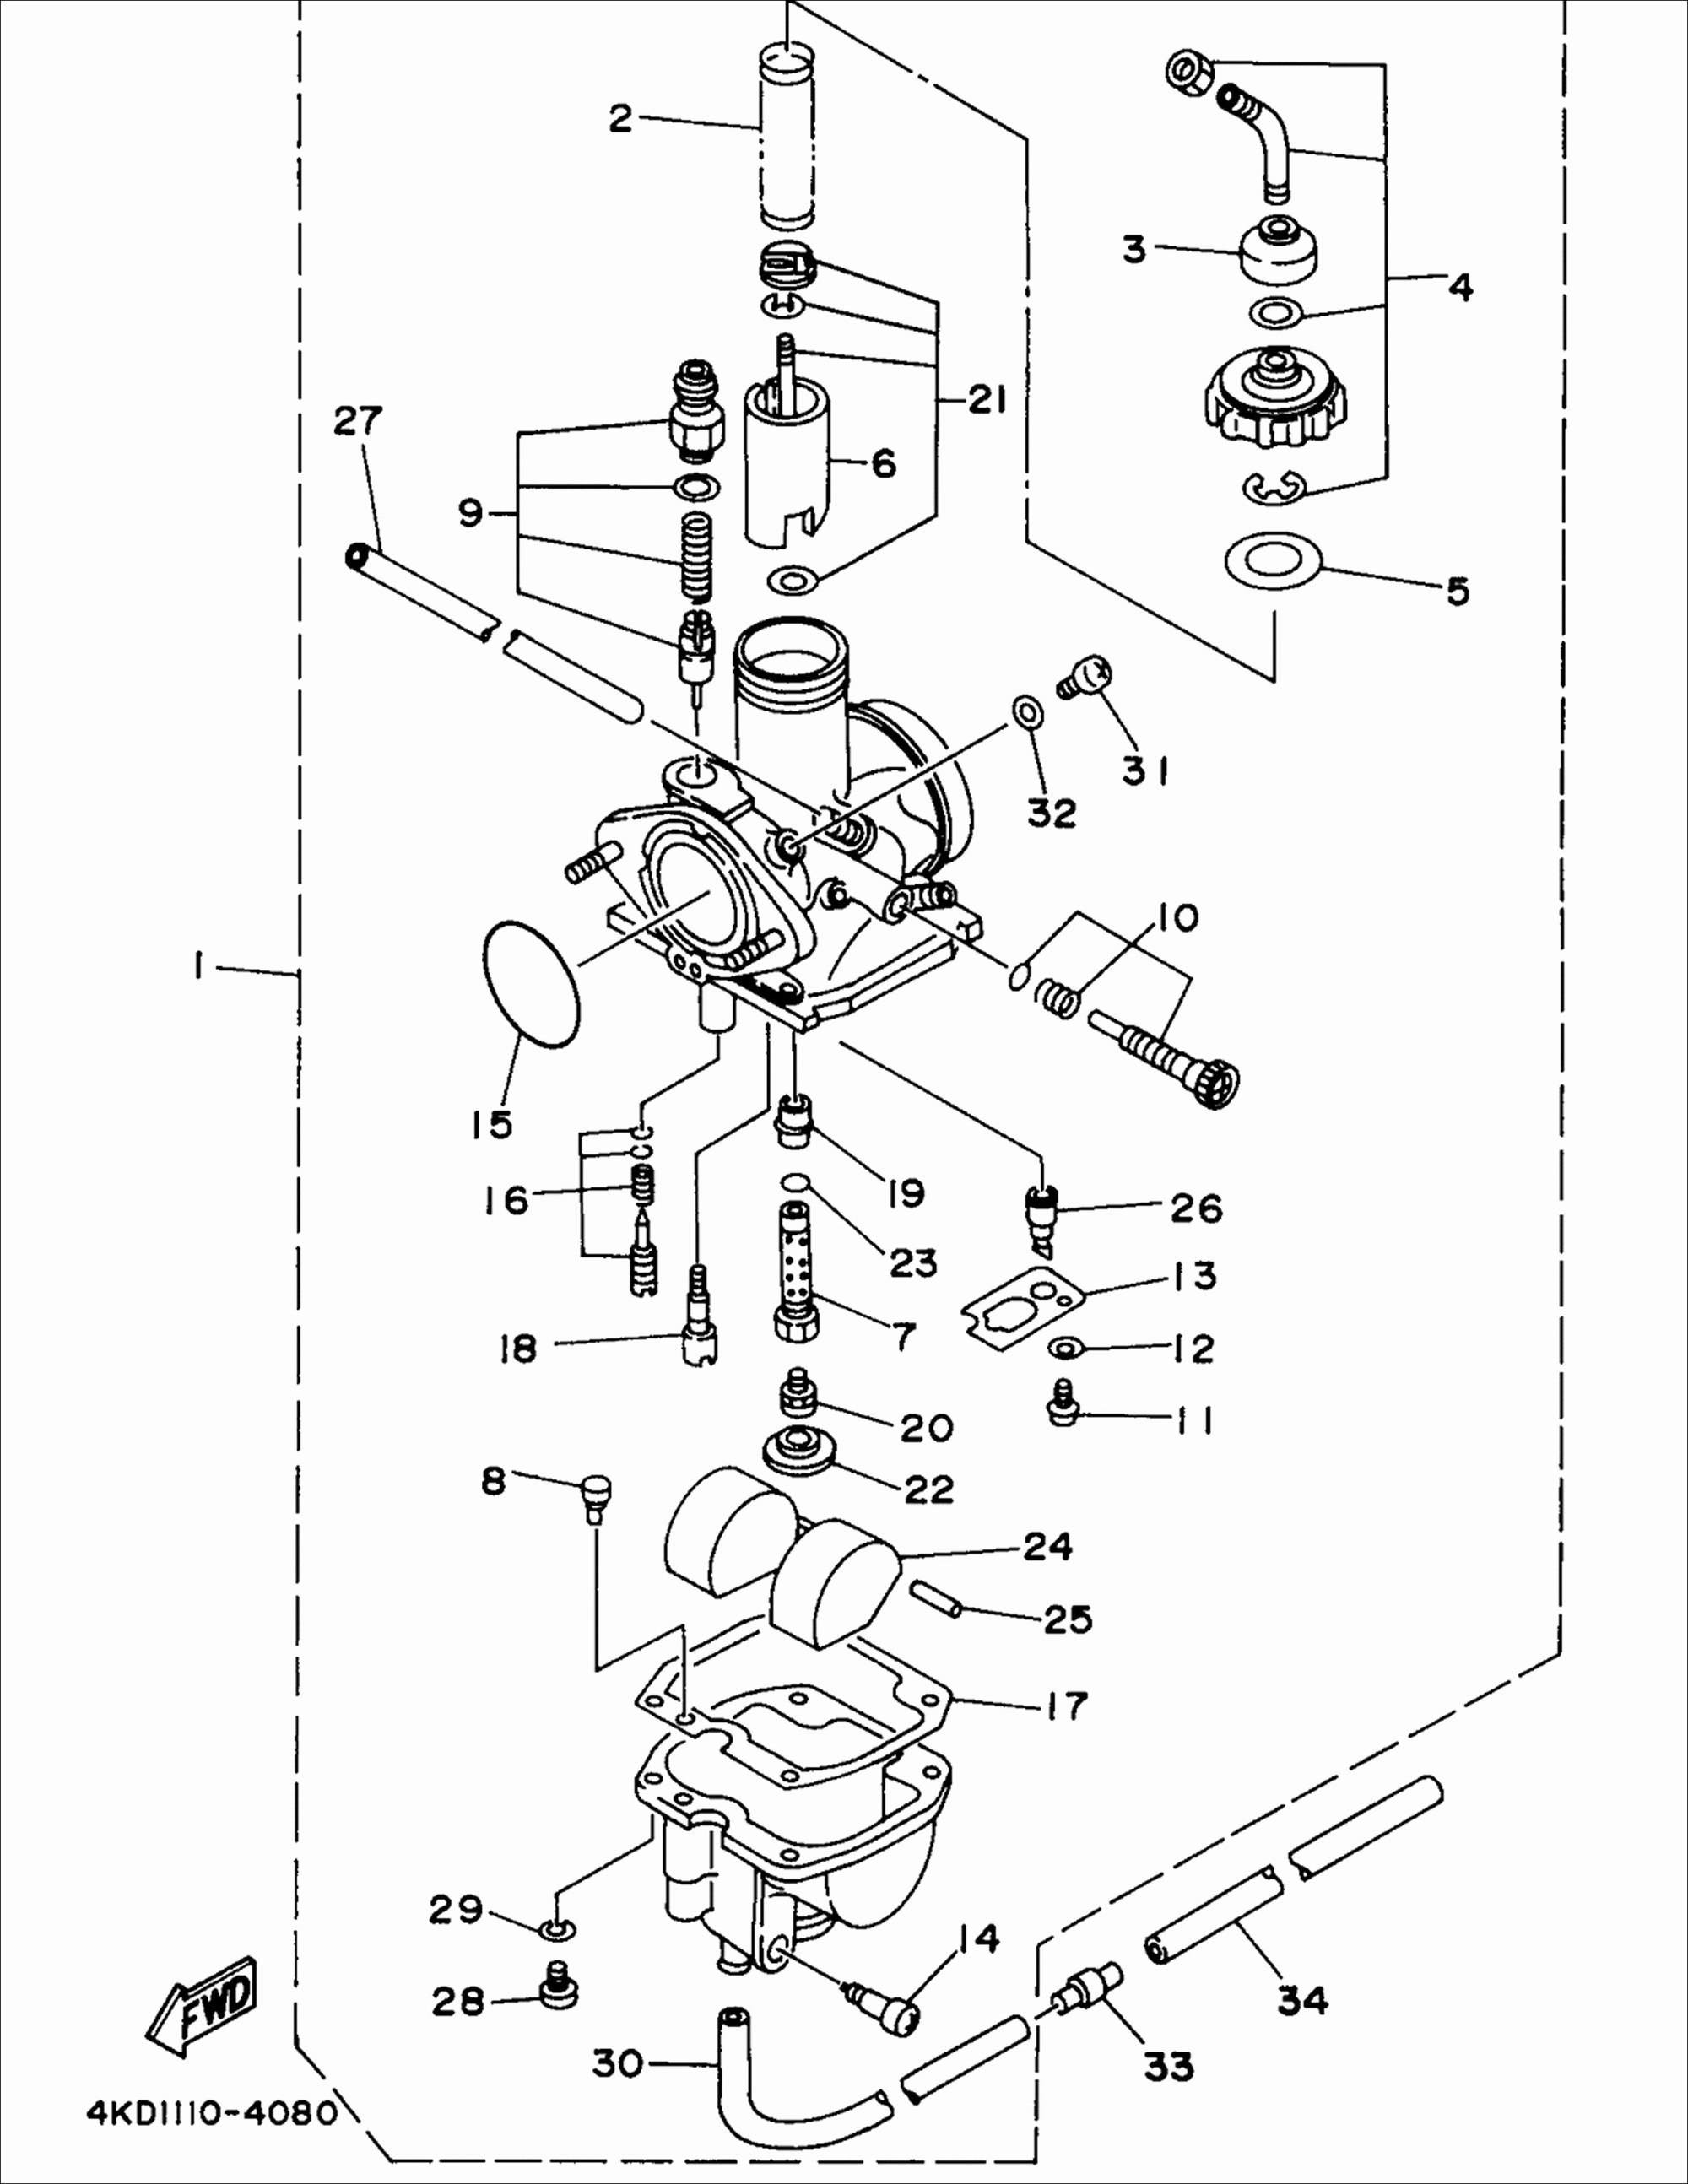 hight resolution of 1996 bonneville wiring diagram worksheet and wiring diagram u2022 rh bookinc co